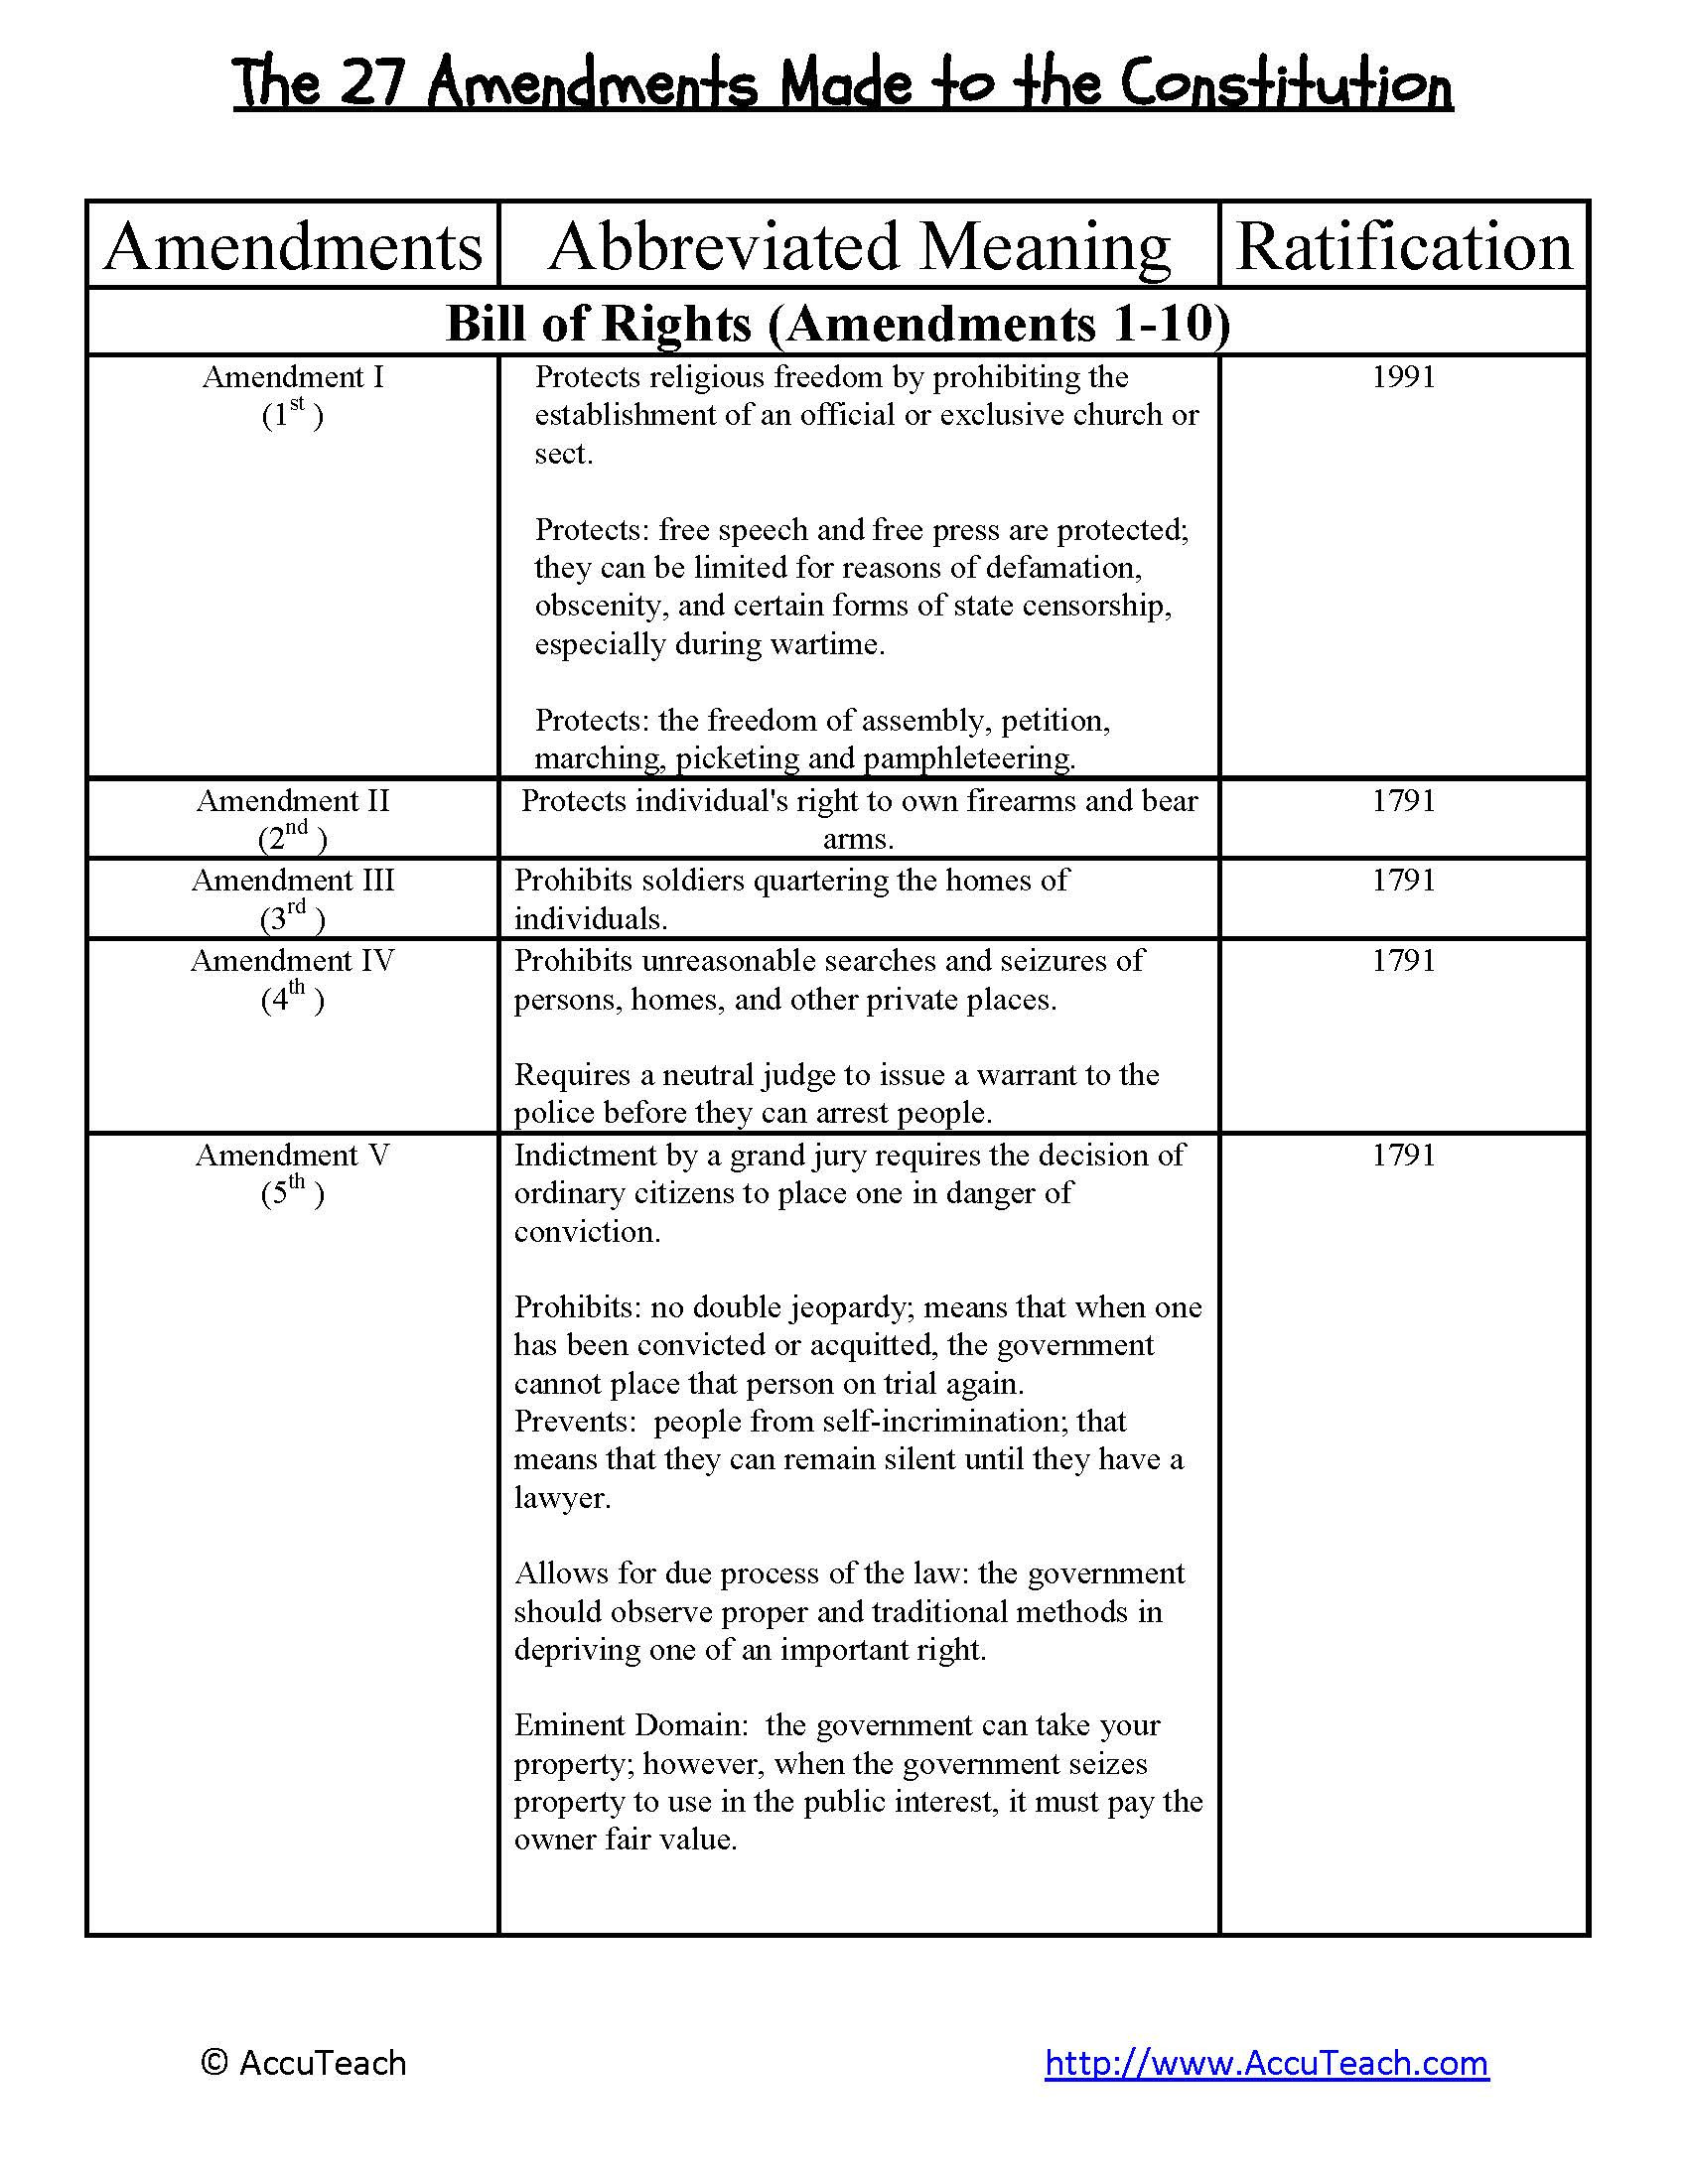 Ratifying the Constitution Worksheet Answers Ratifying the Constitution Worksheet Nidecmege